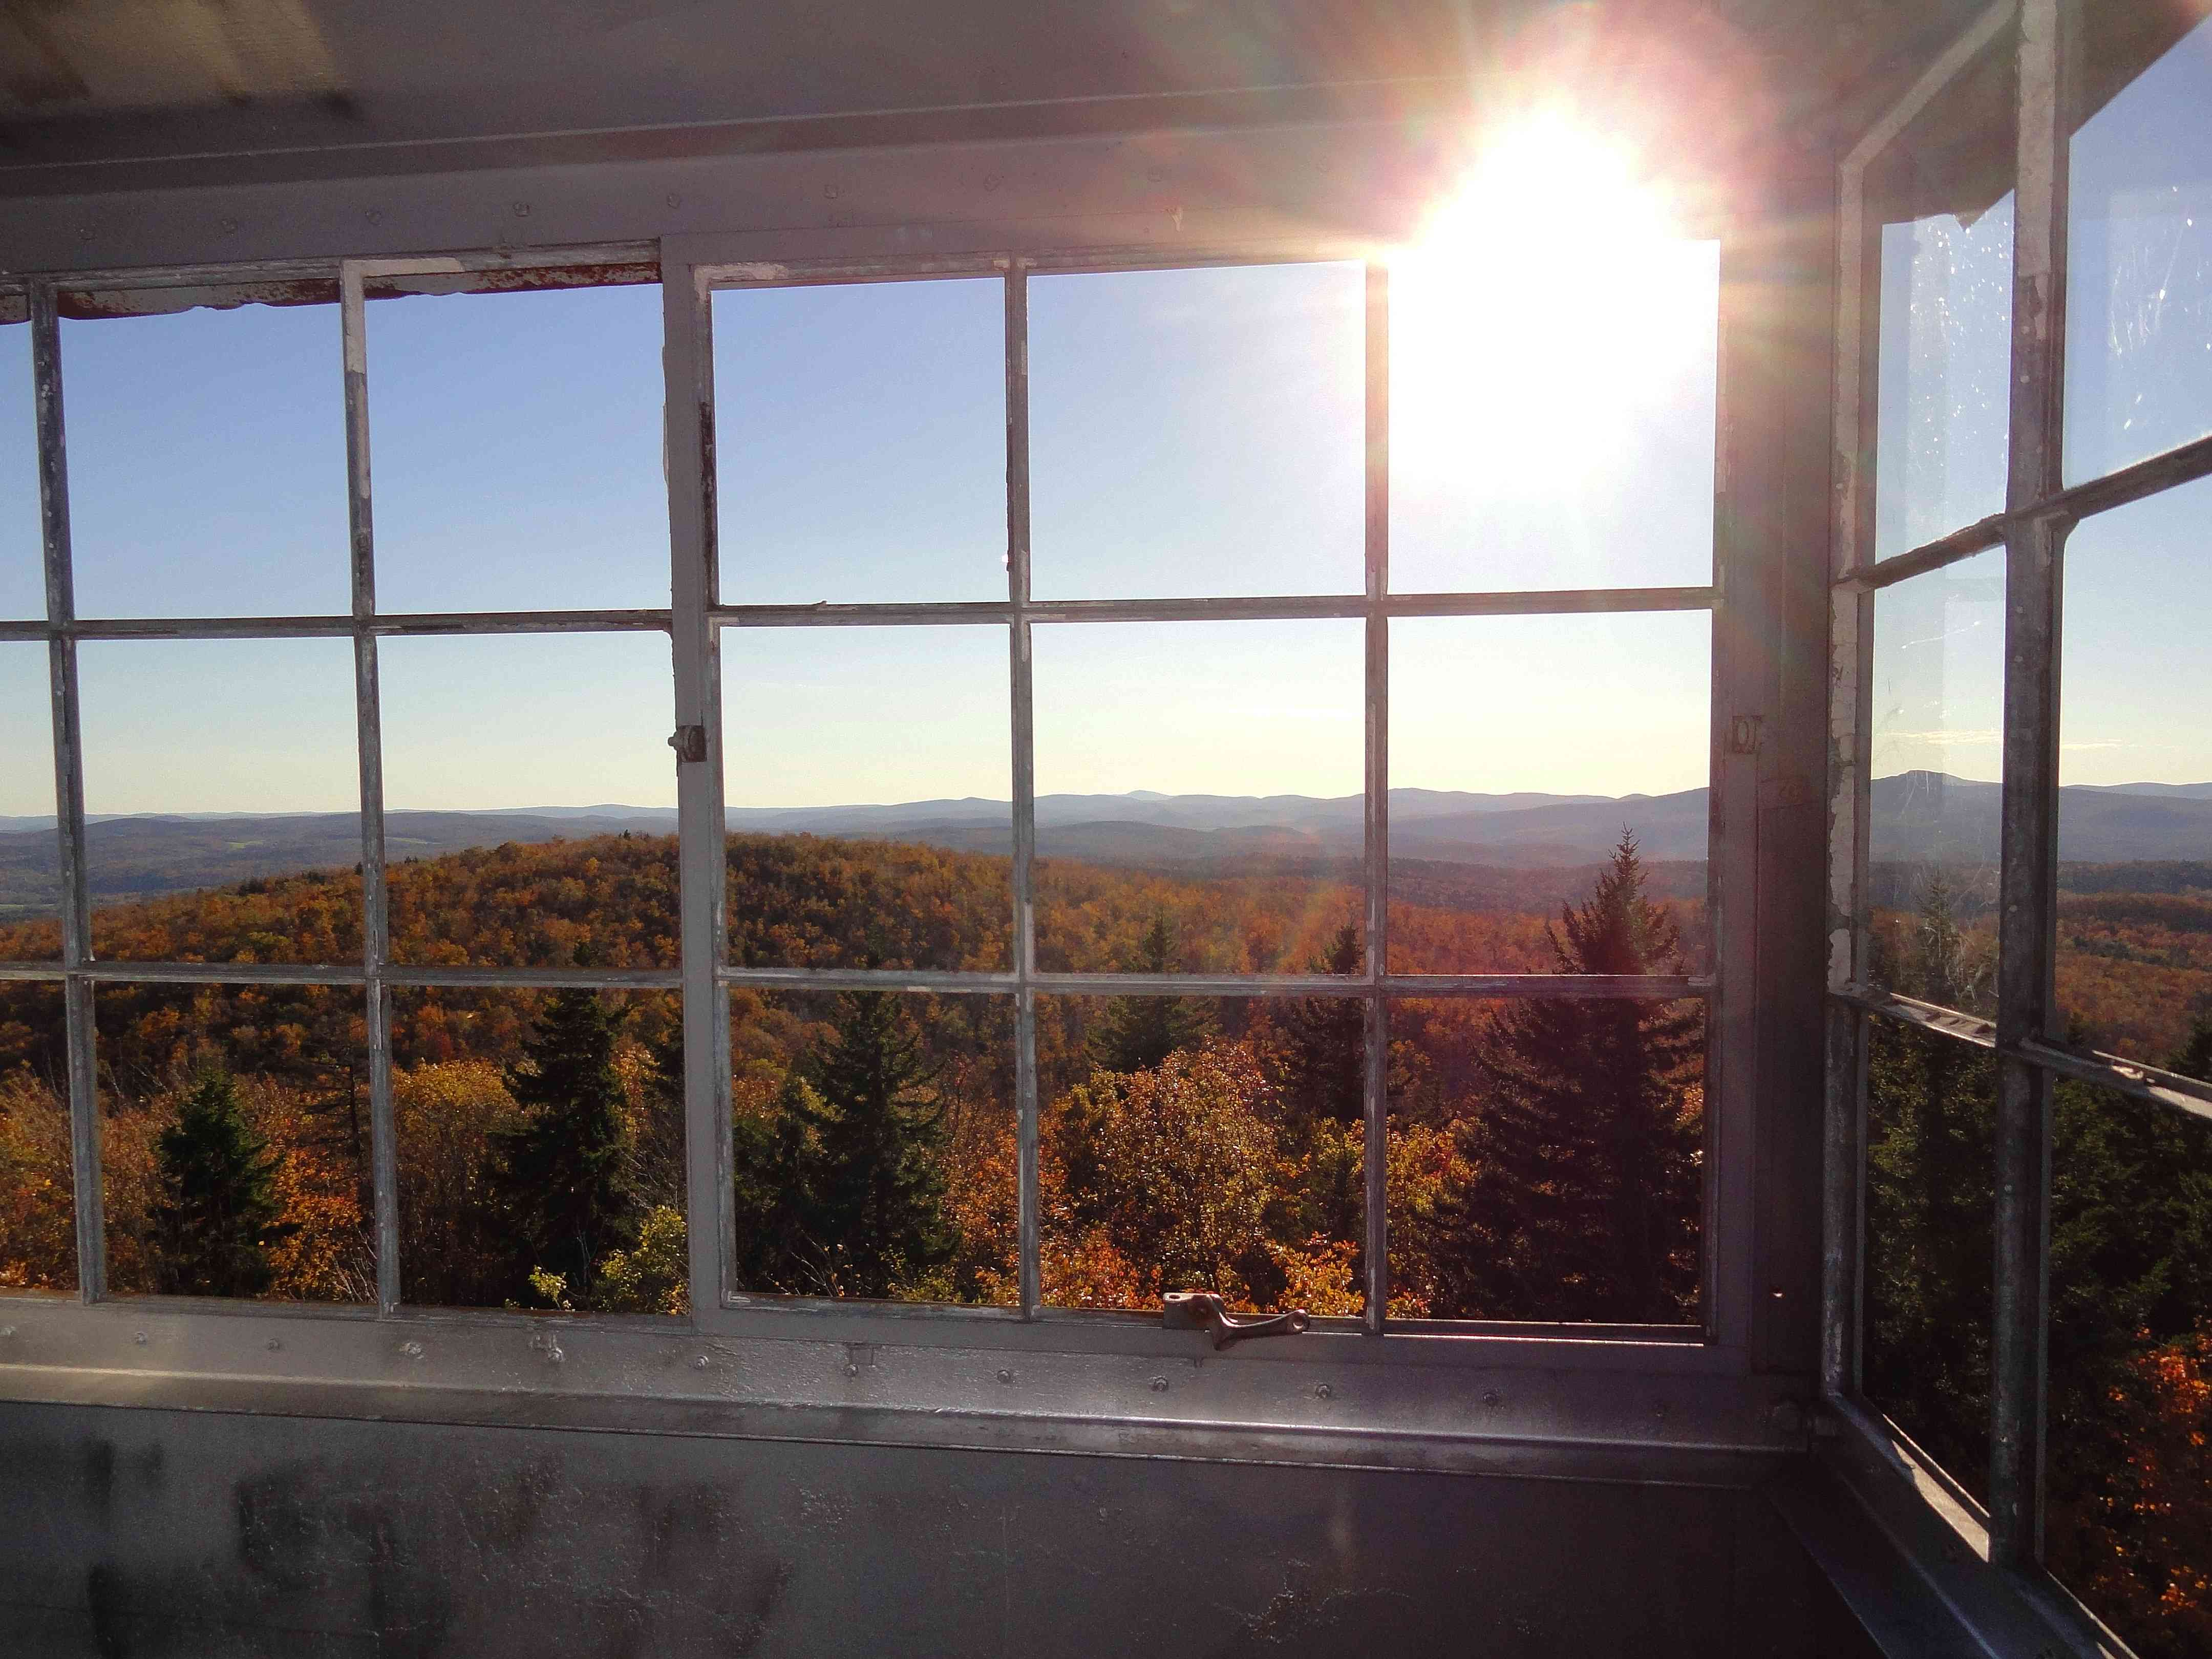 Fall View from Fire Tower, Molly Stark State Park, Molly Stark Byway